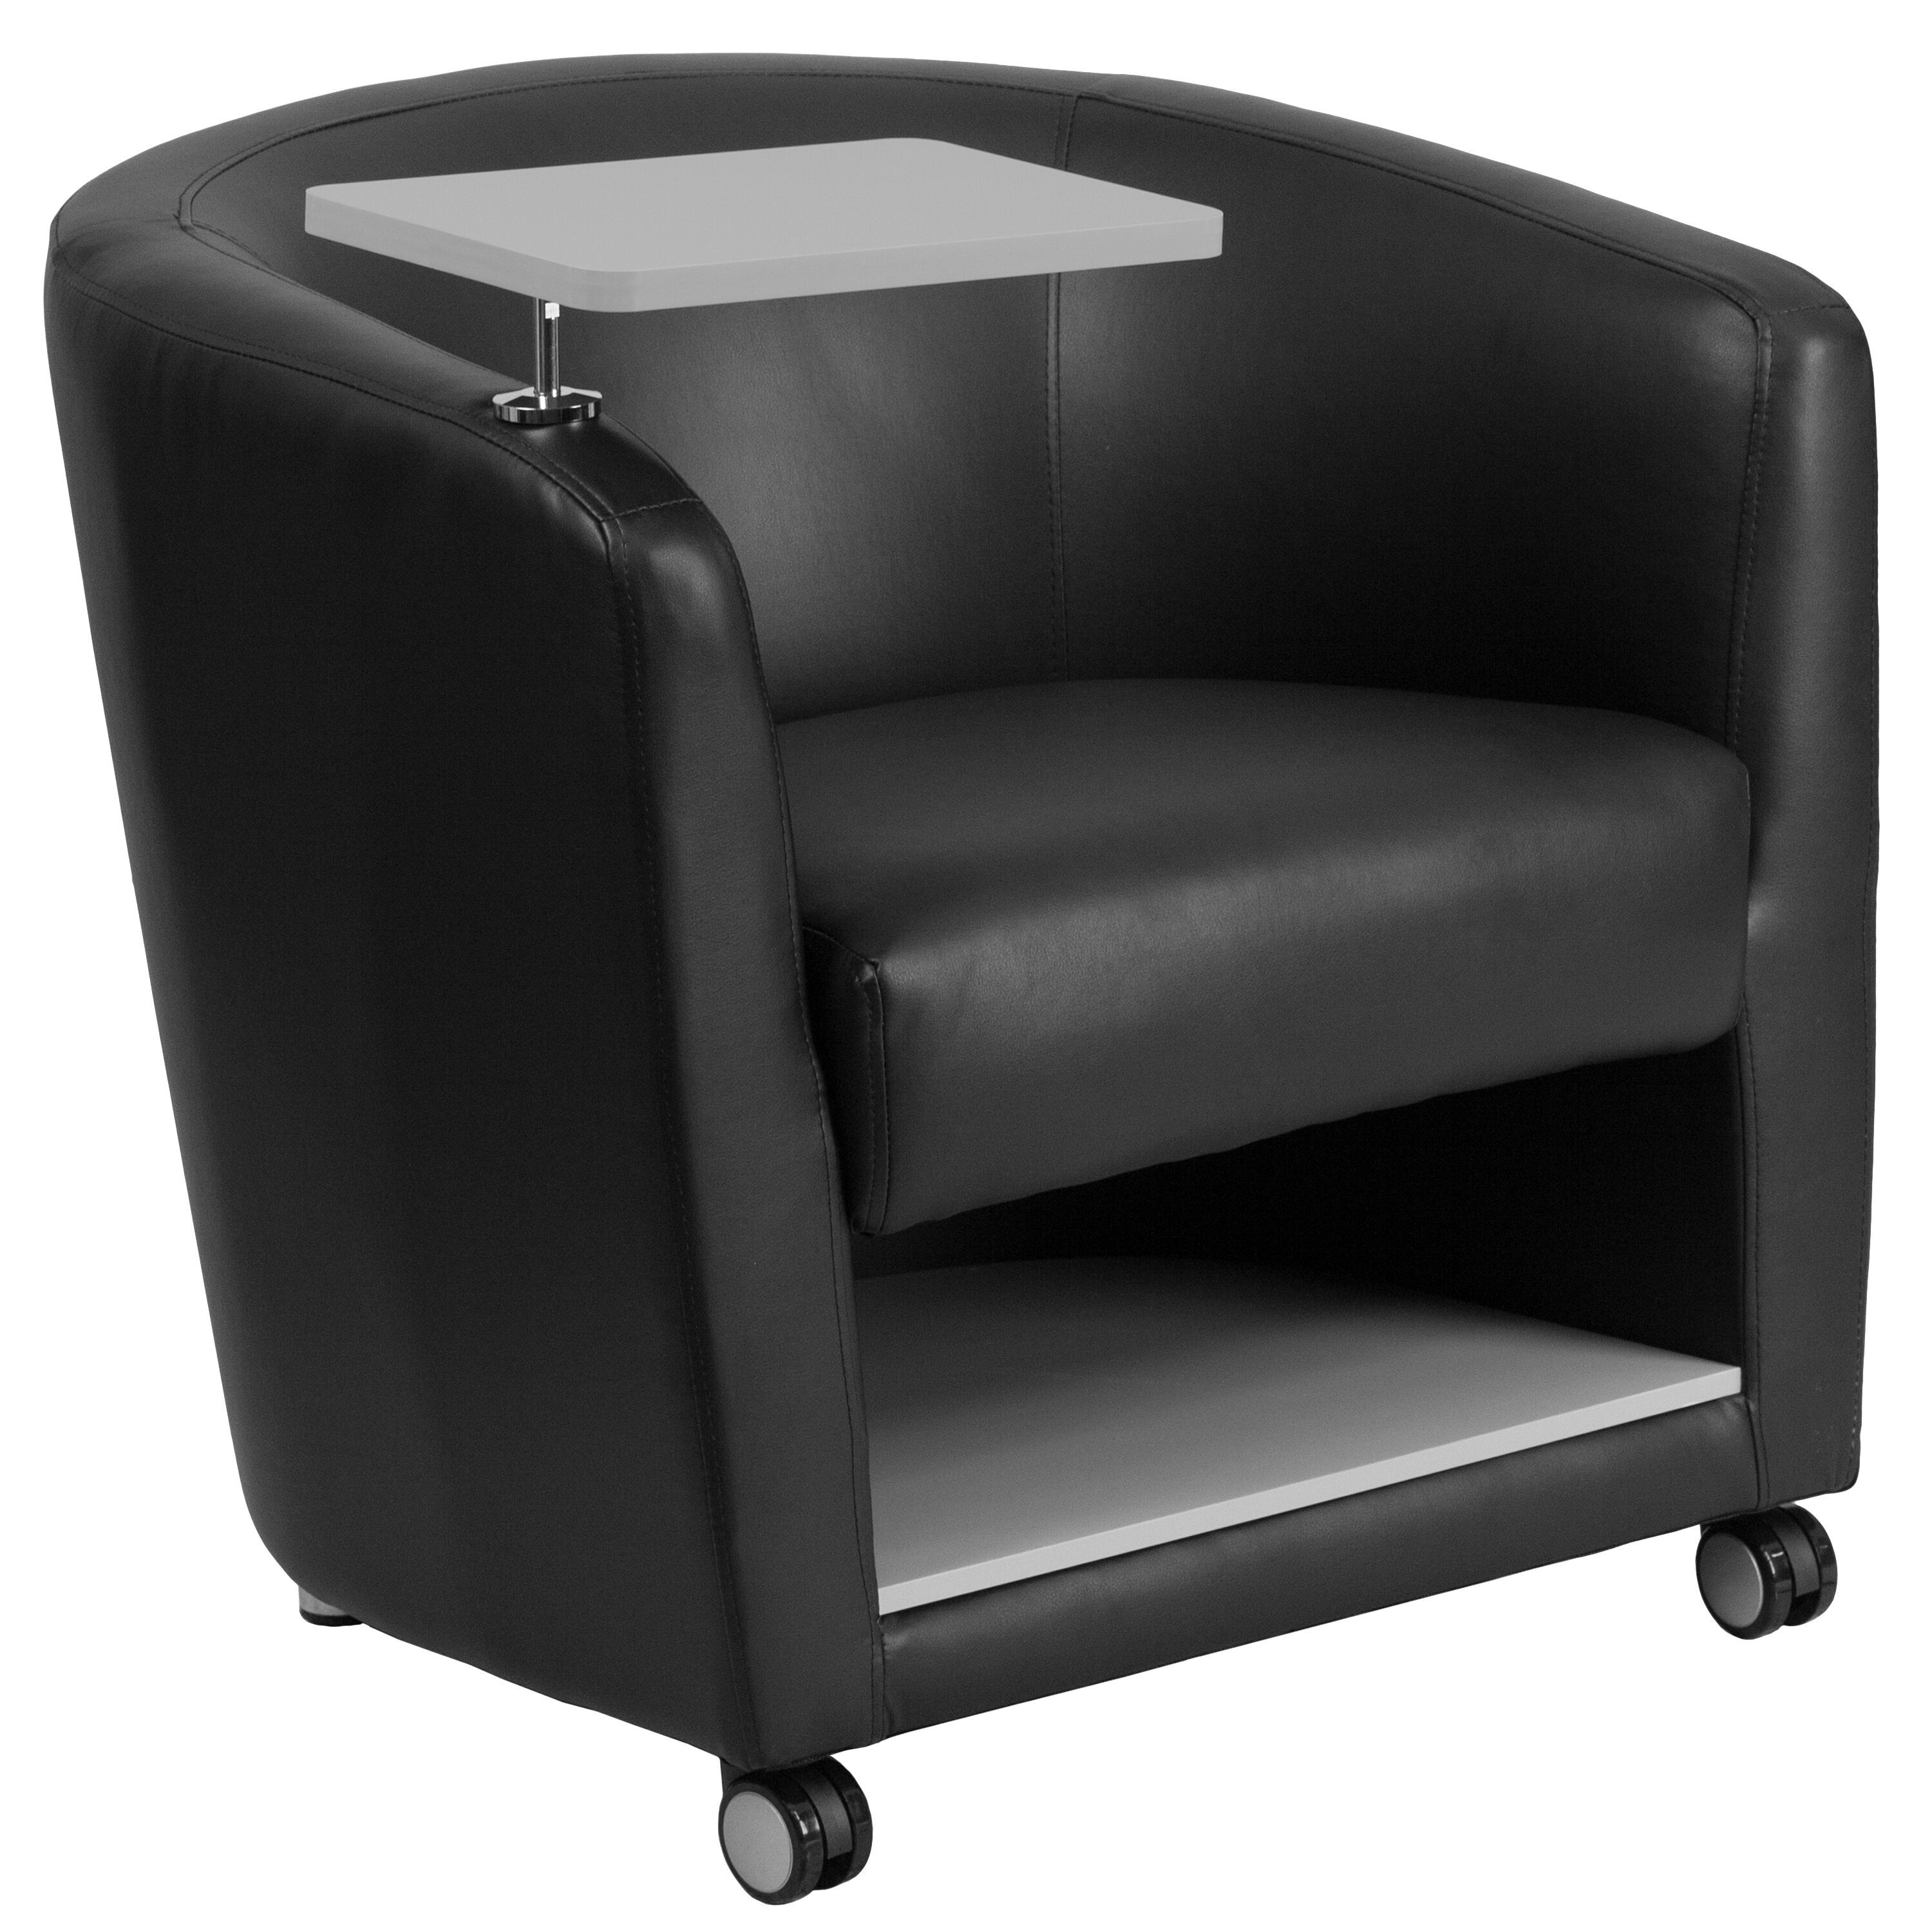 Beau ... Our Black Leather Guest Chair With Tablet Arm, Front Wheel Casters And  Under Seat Storage ...